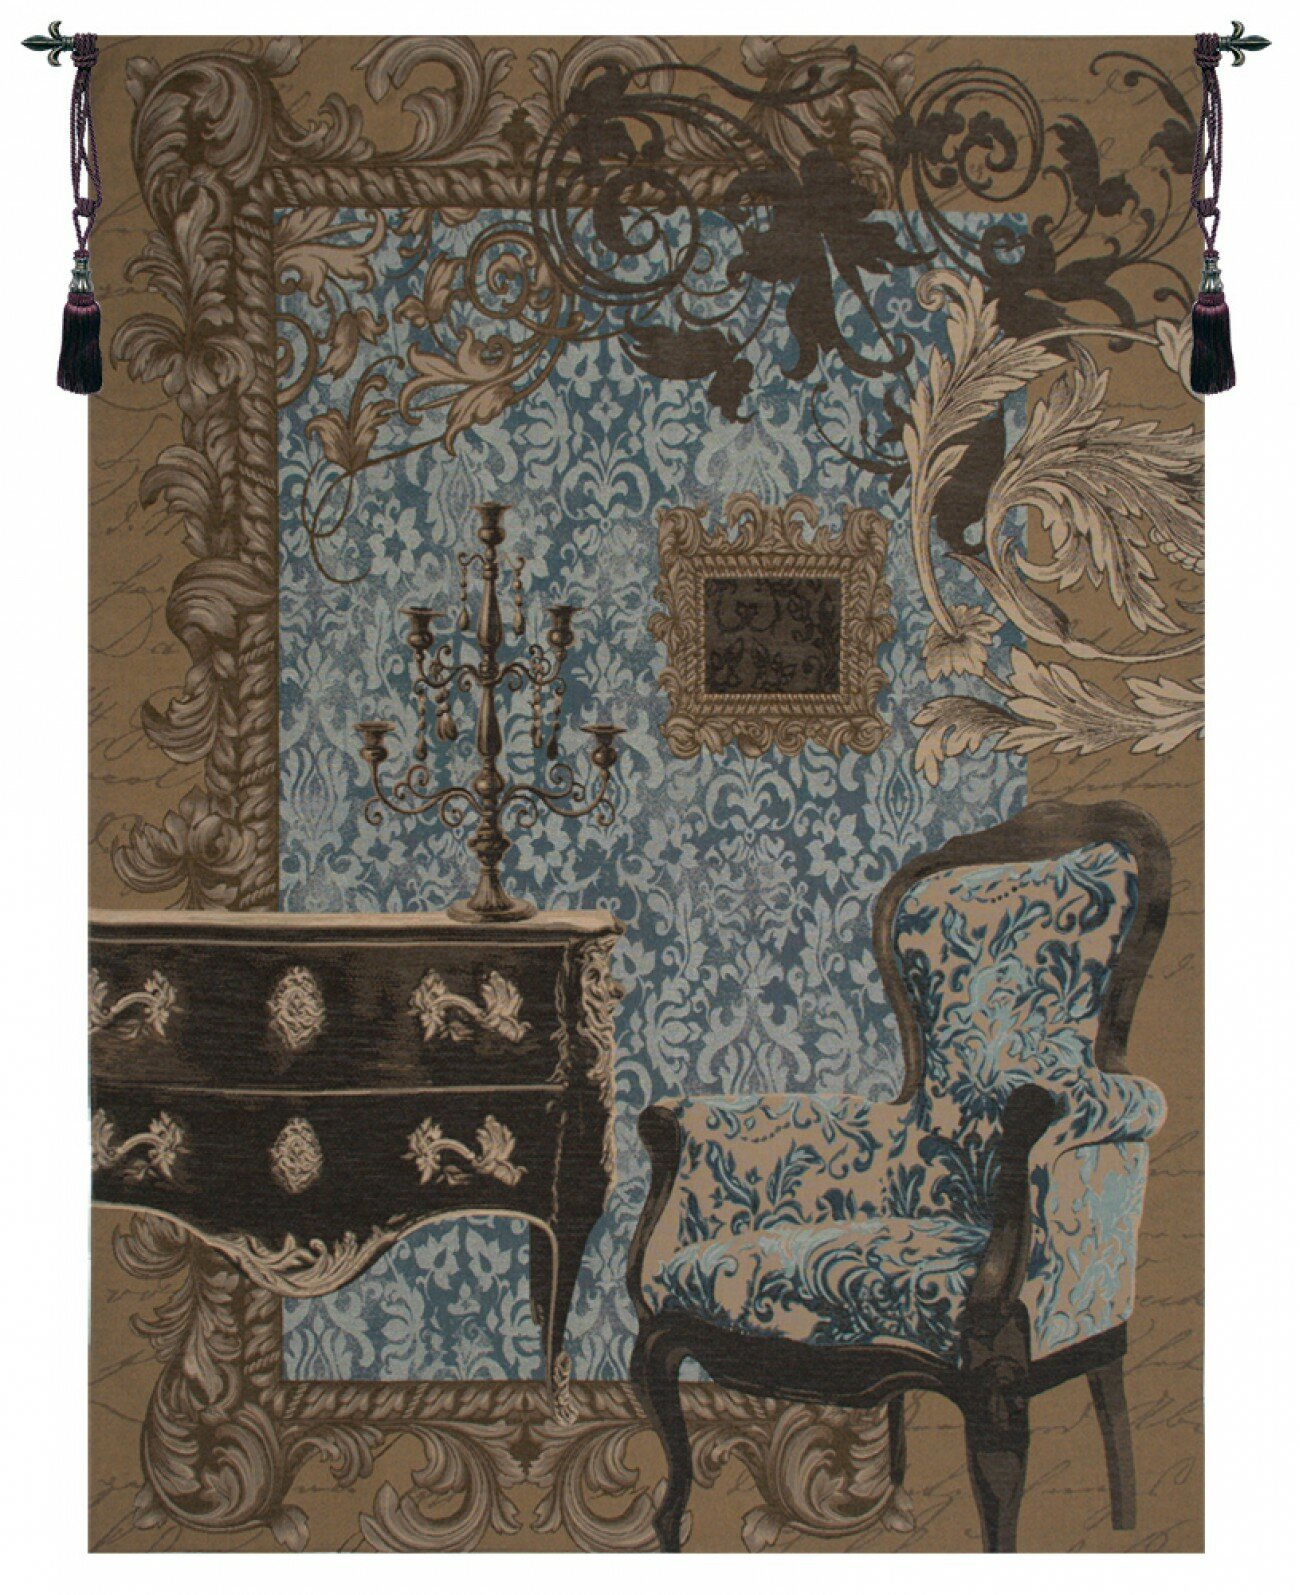 Mobilier Louis Xvi European Tapestry Inside Most Up To Date Blended Fabric Chateau Bellevue European Tapestries (View 6 of 20)